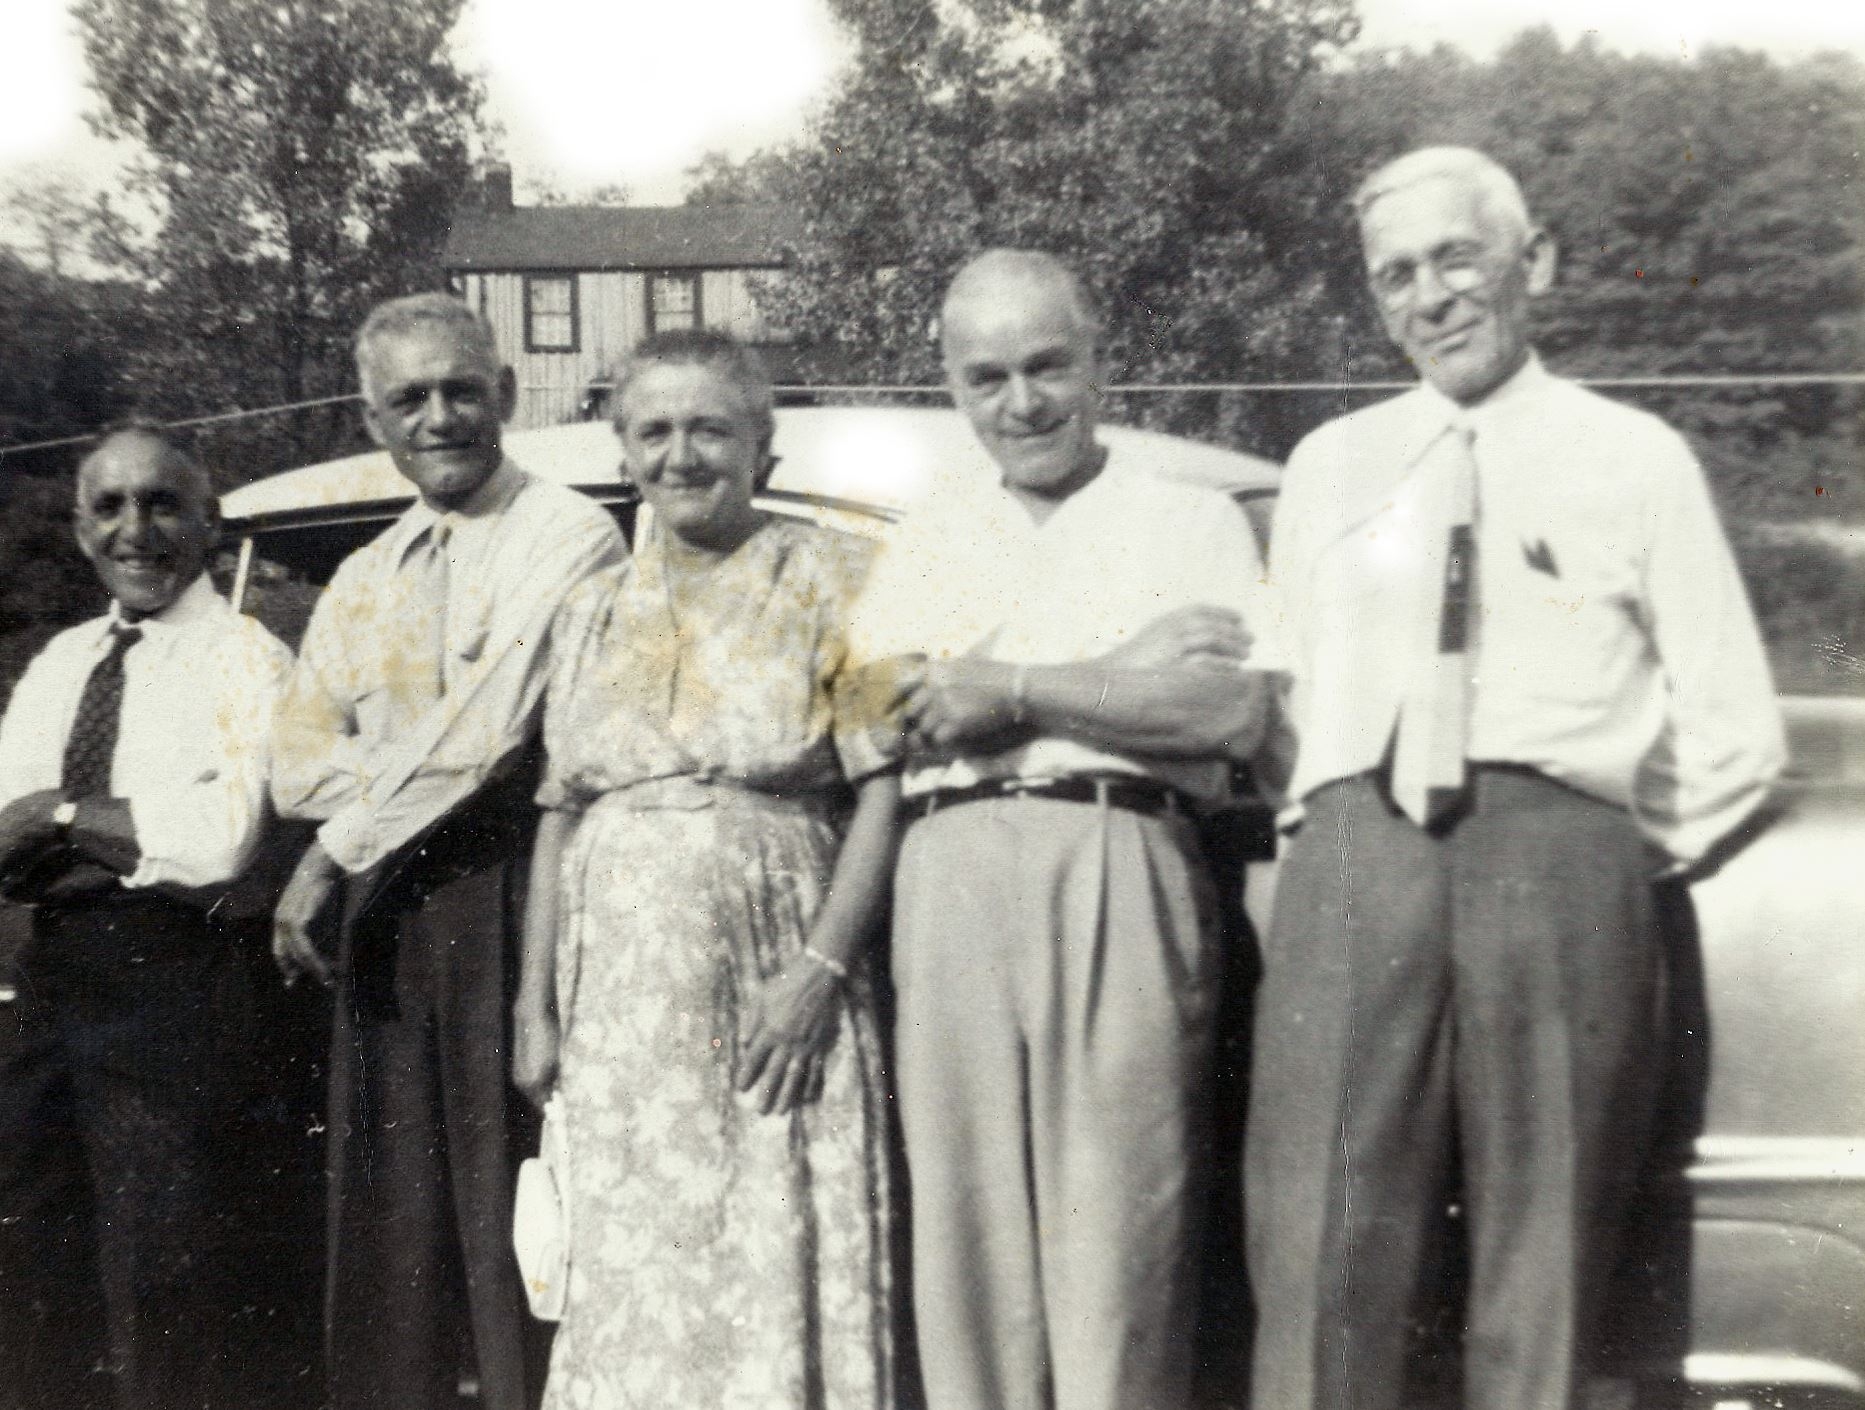 ArleneBurnettFam2 In this family photo from Arlene Burnett, her grandfather Nicholas Carrola is on the far right.